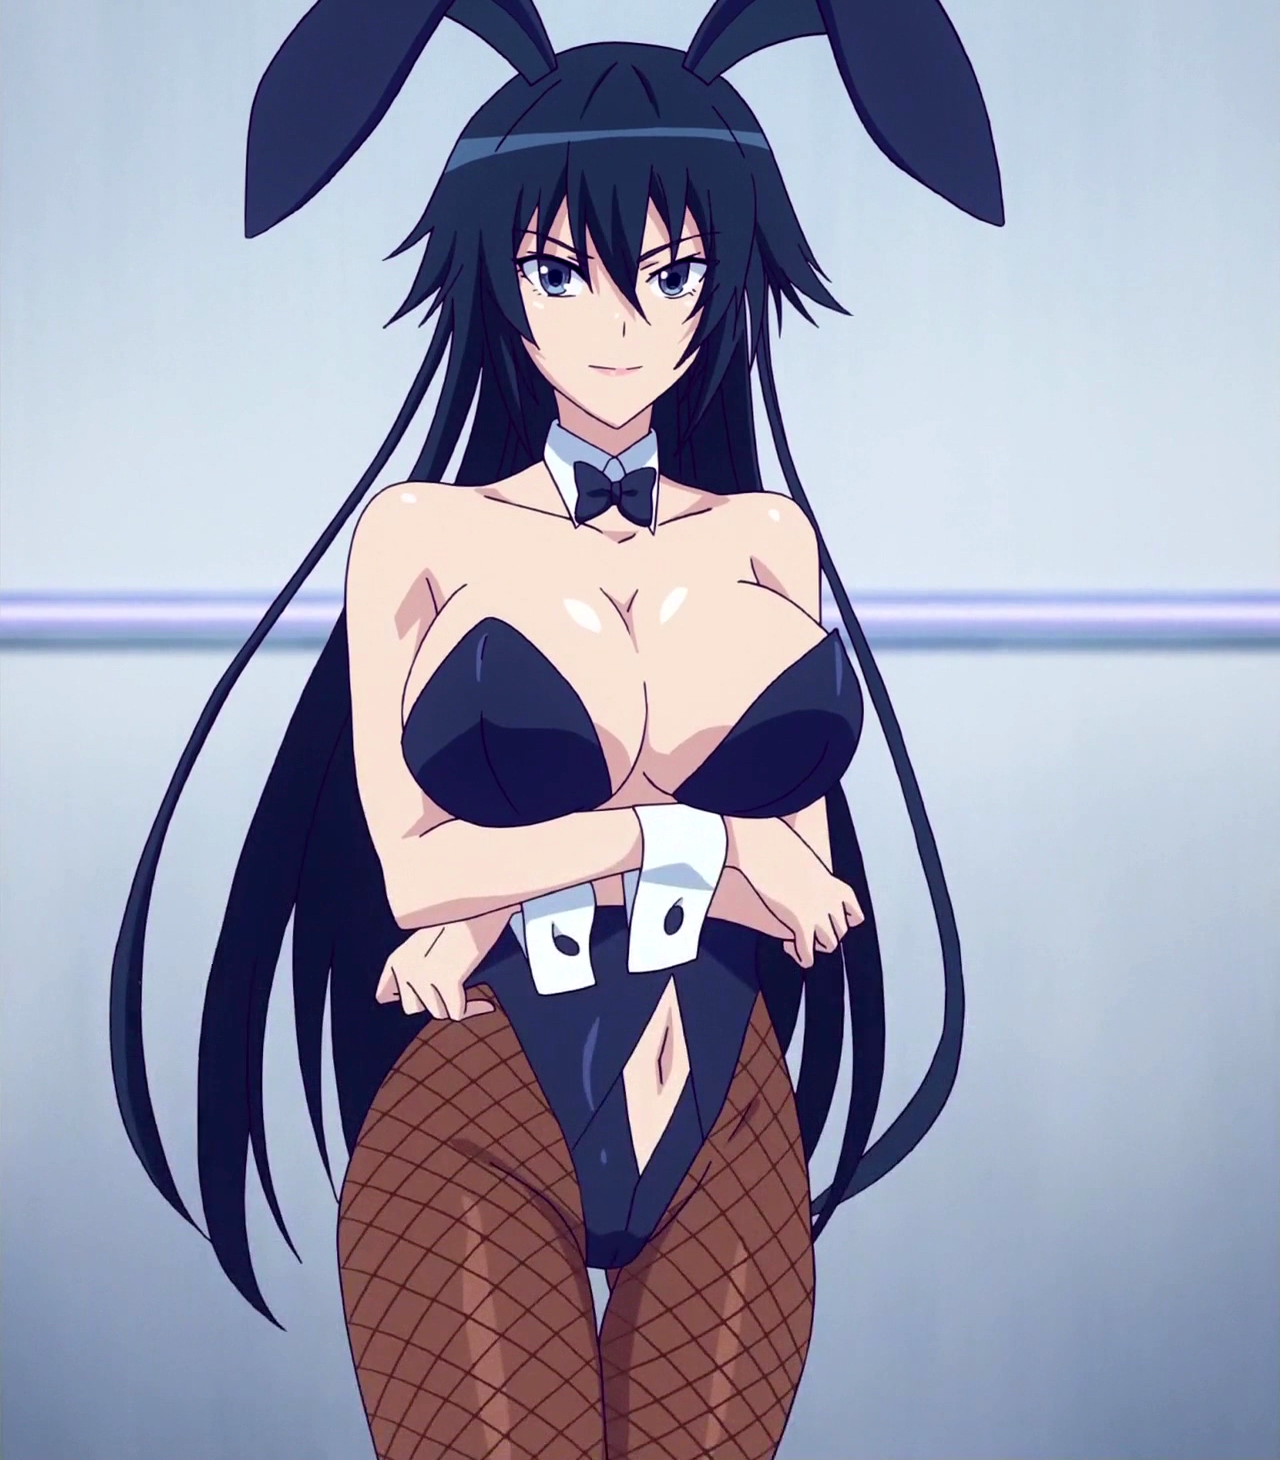 the fruit of grisaia human hair color anime black hair mangaka joint